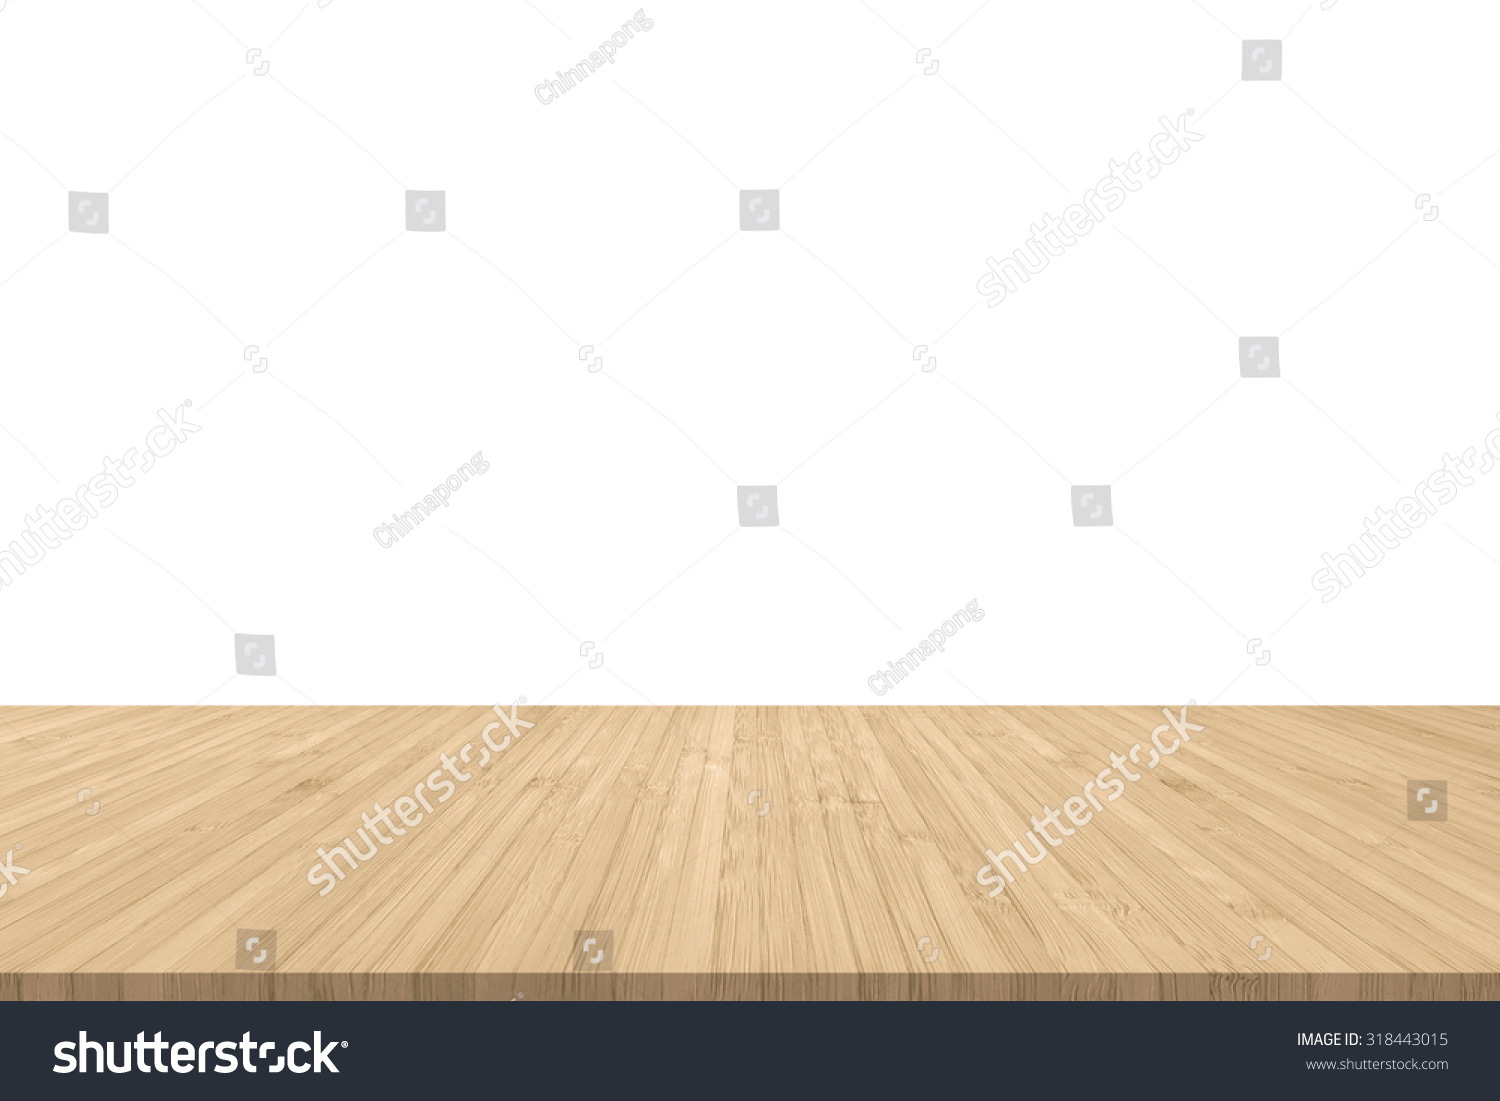 Light Wood Floor Background. Isolated wood floor texture in light yellow cream color with empty white  wall background Wood Floor Texture Light Yellow Stock Photo 318443015